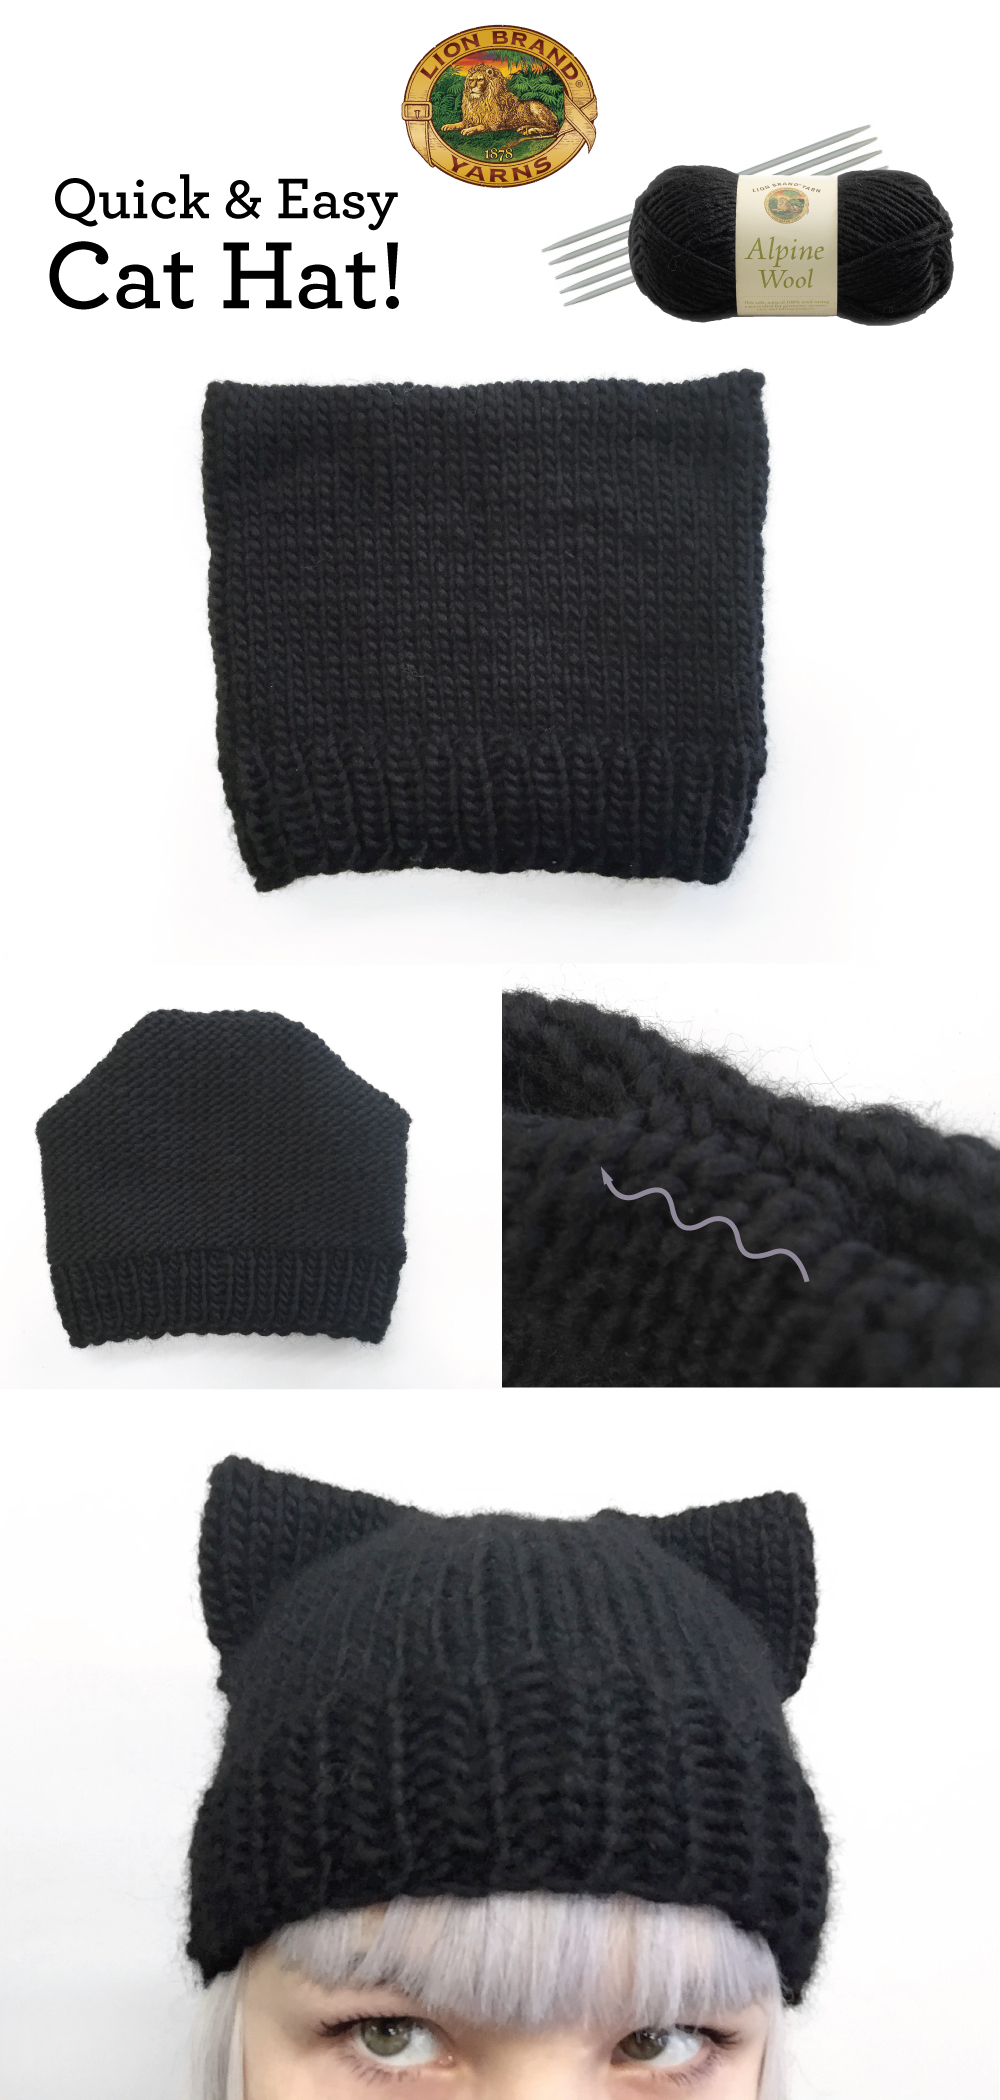 Easy Knit Hat Pattern For Beginners Knit A Quick Easy Cat Hat Lion Brand Notebook